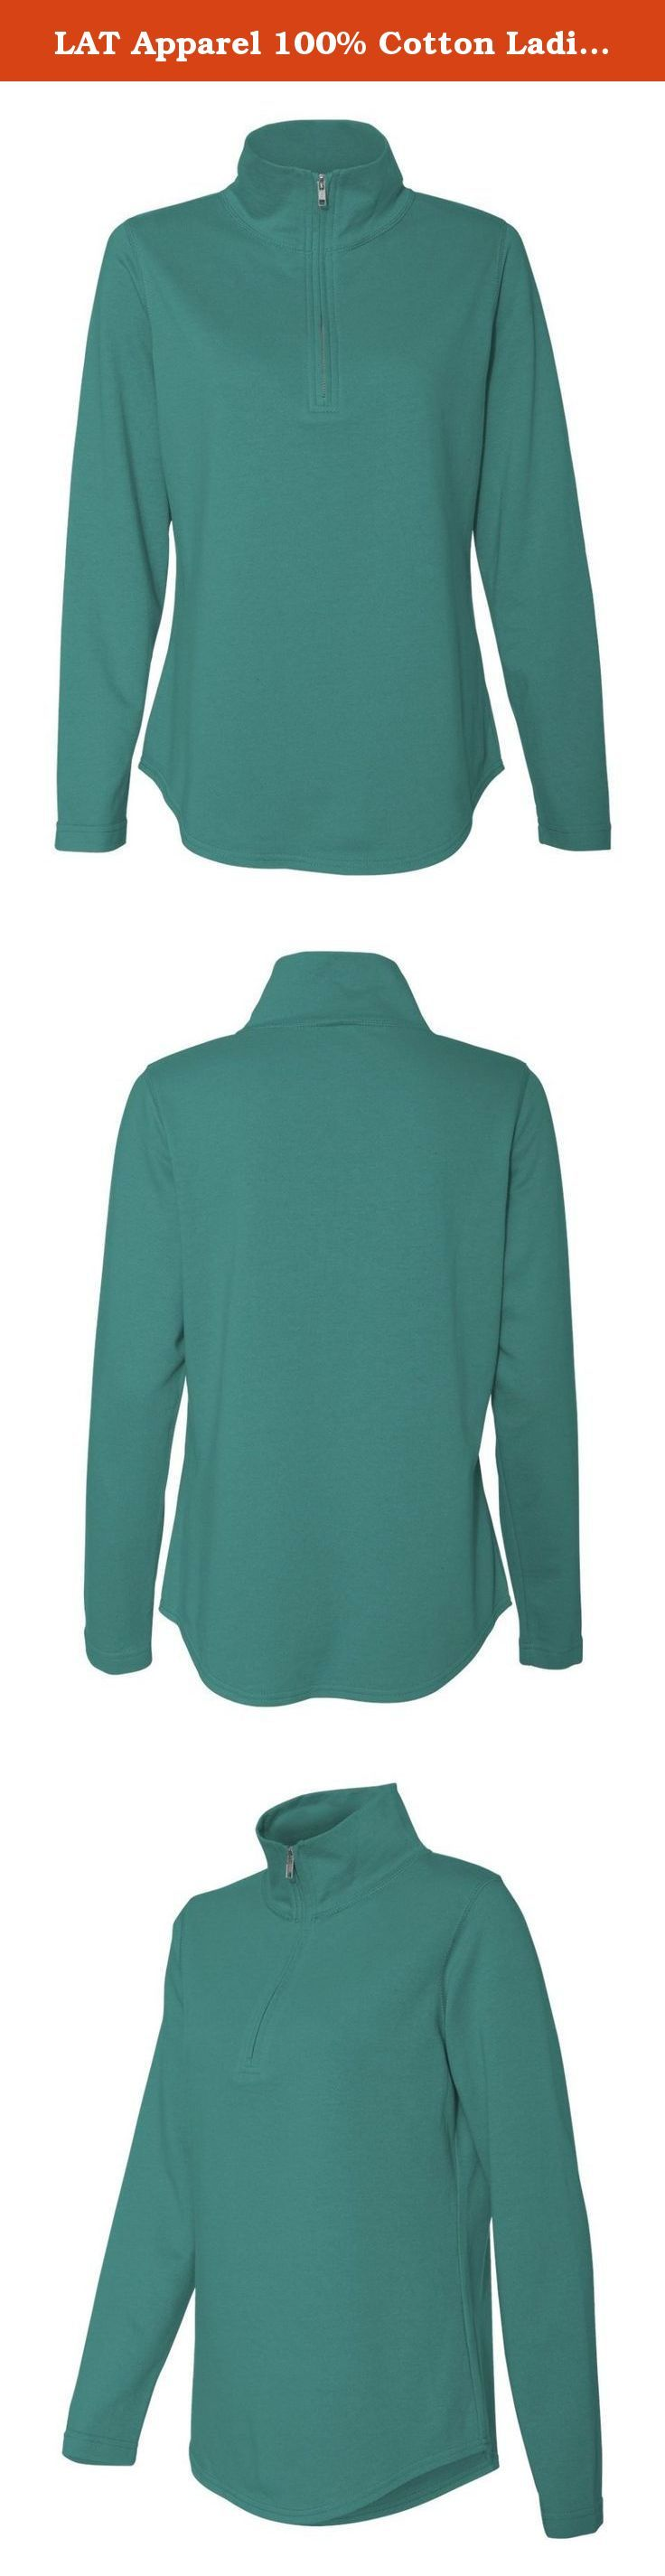 LAT Apparel 100% Cotton Ladies French Terry 1/4 Zip Hoodie [X Large] Jade Blue Long Sleeve Sweater. Stay stylish in cooler weather with these 1/4-zip sweatshirts for women. Lightweight French Terry fleece is the perfect fabric for year round warmth. Hemmed sleeves and shirt tail bottom give these basic sweatshirts an upscale look. Looks great layered or worn alone. These quarter zip sweatshirts come in 7 fashionable colors for fall!.